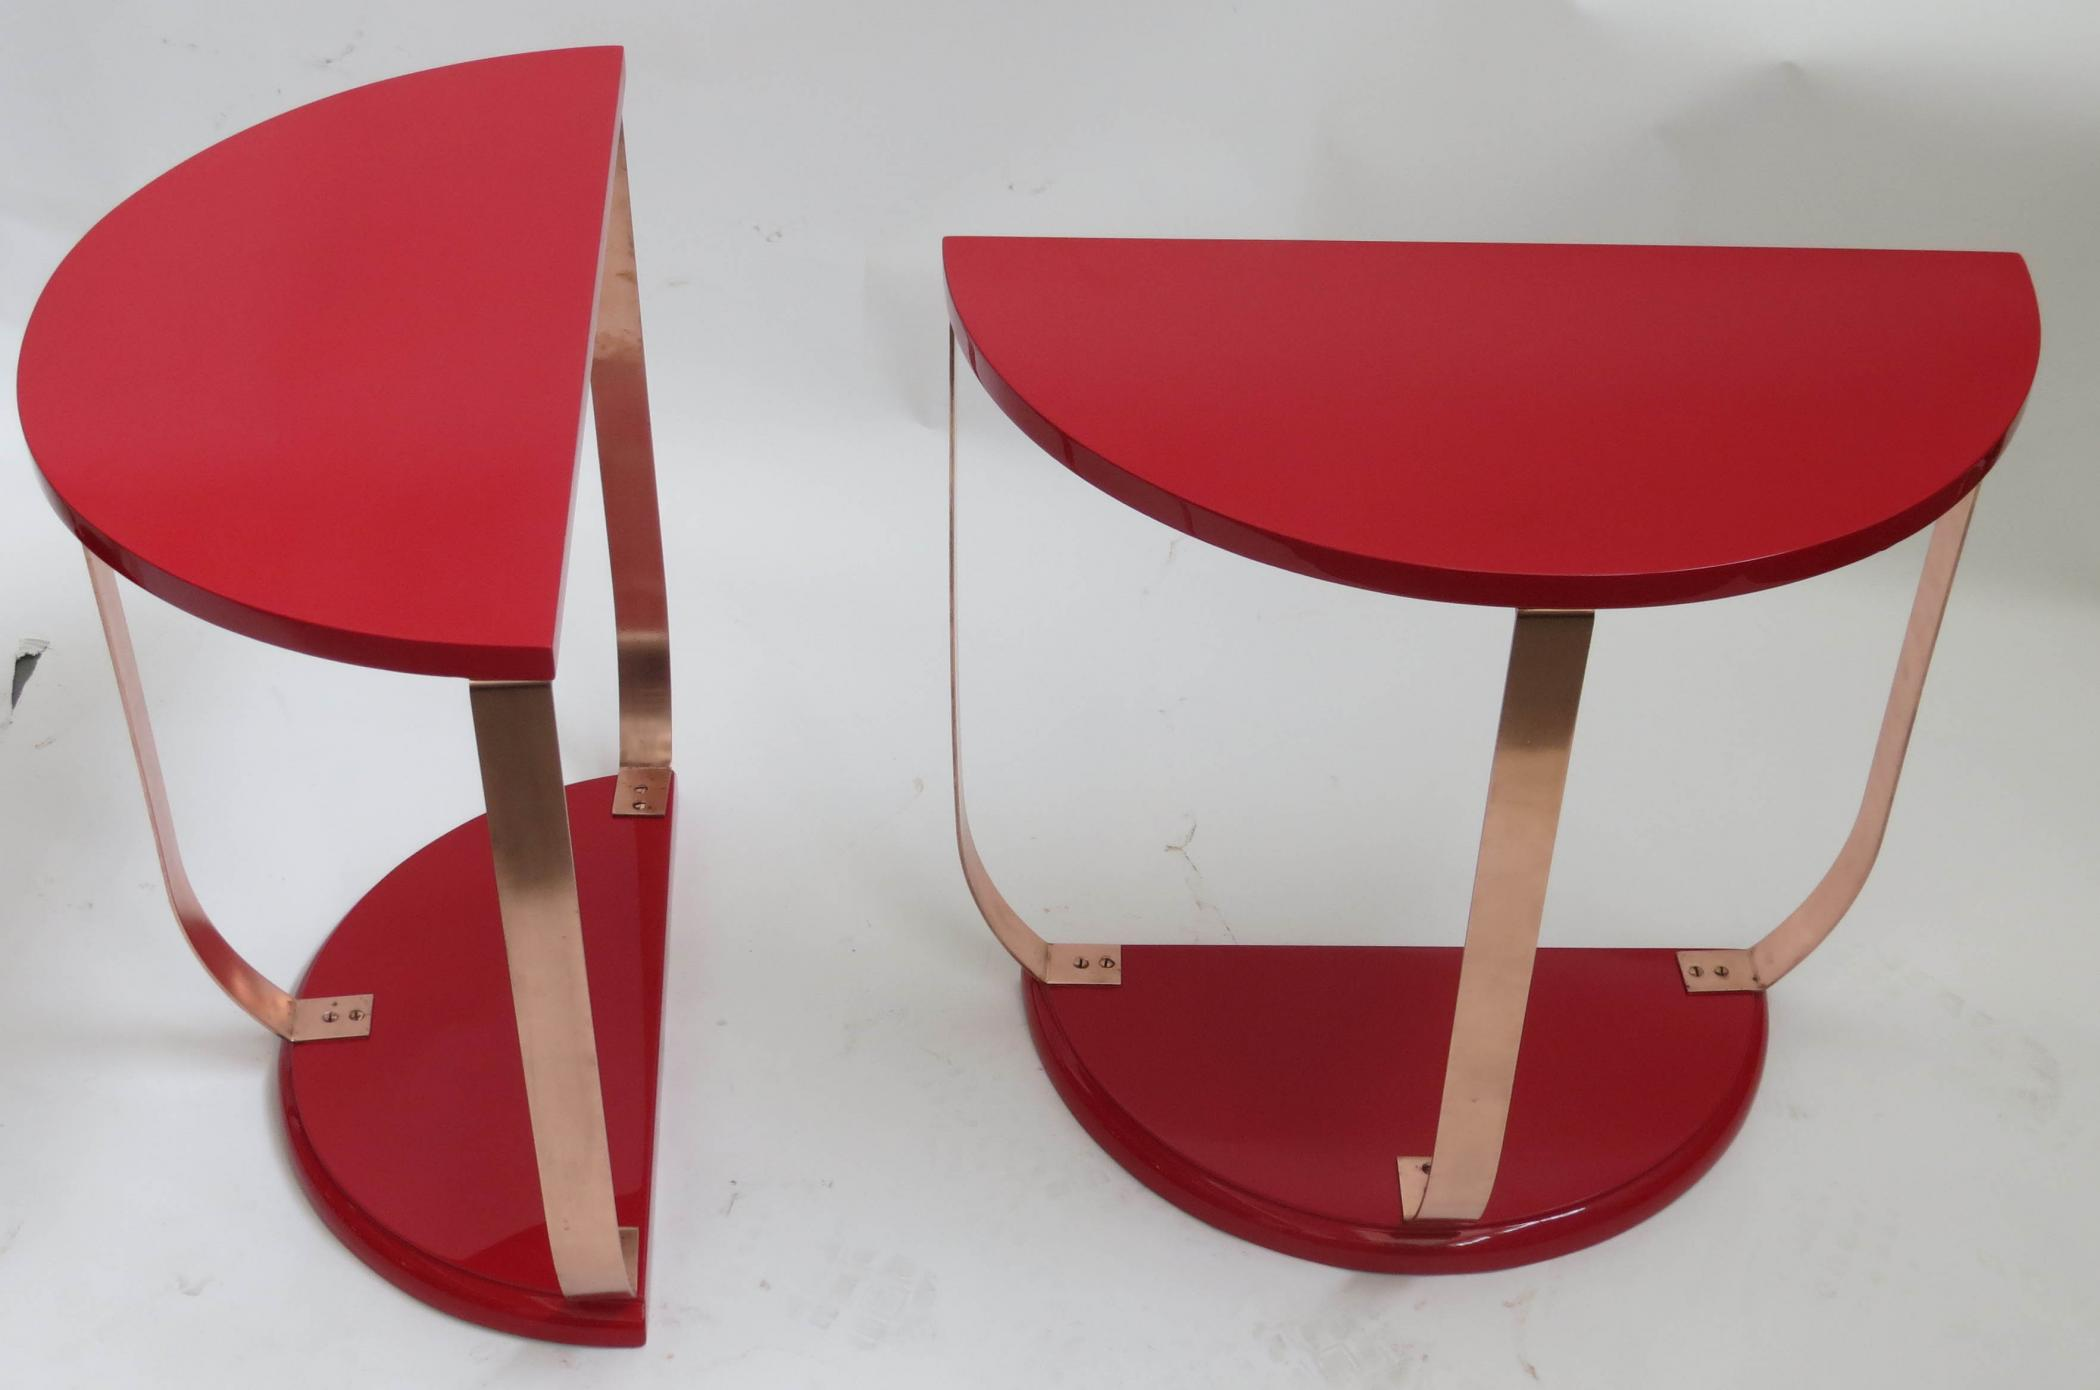 Red Lacquer American Art Deco Side Table Pair